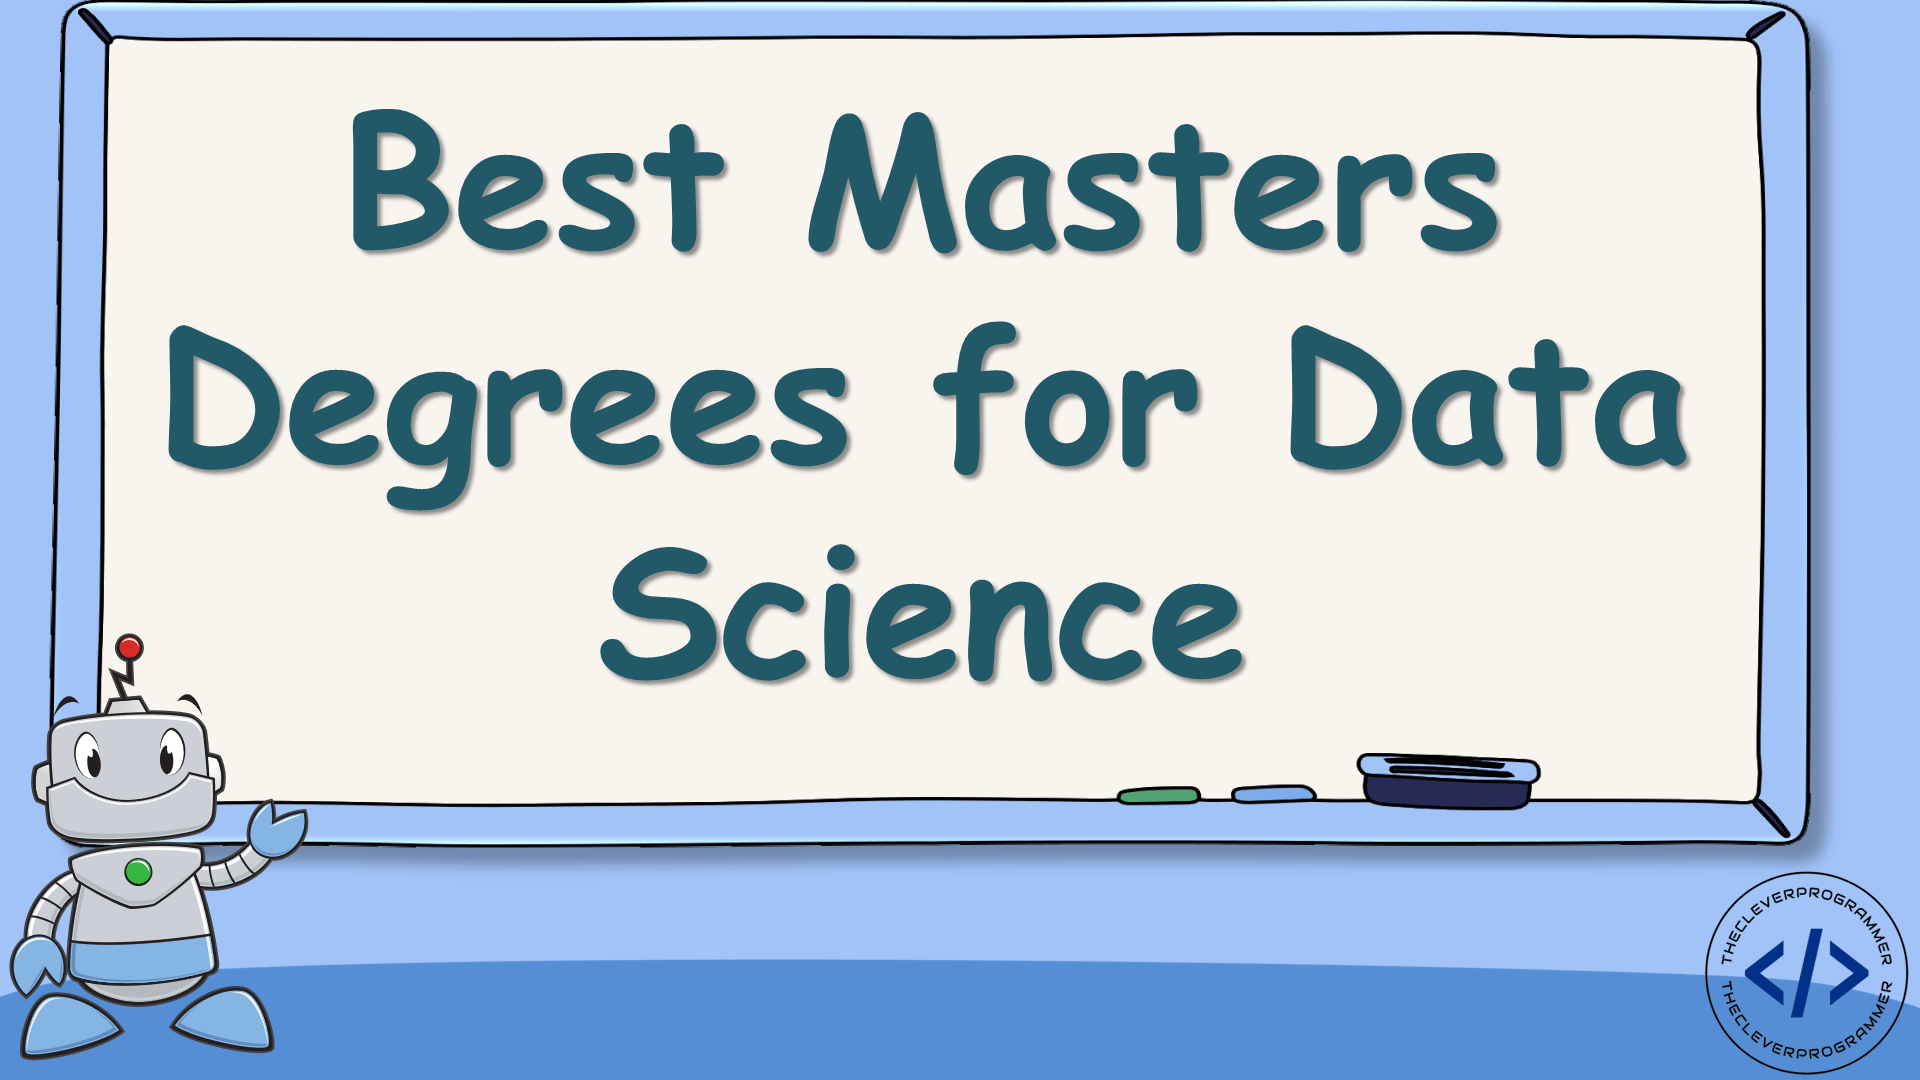 Best Masters Degrees for Data Science